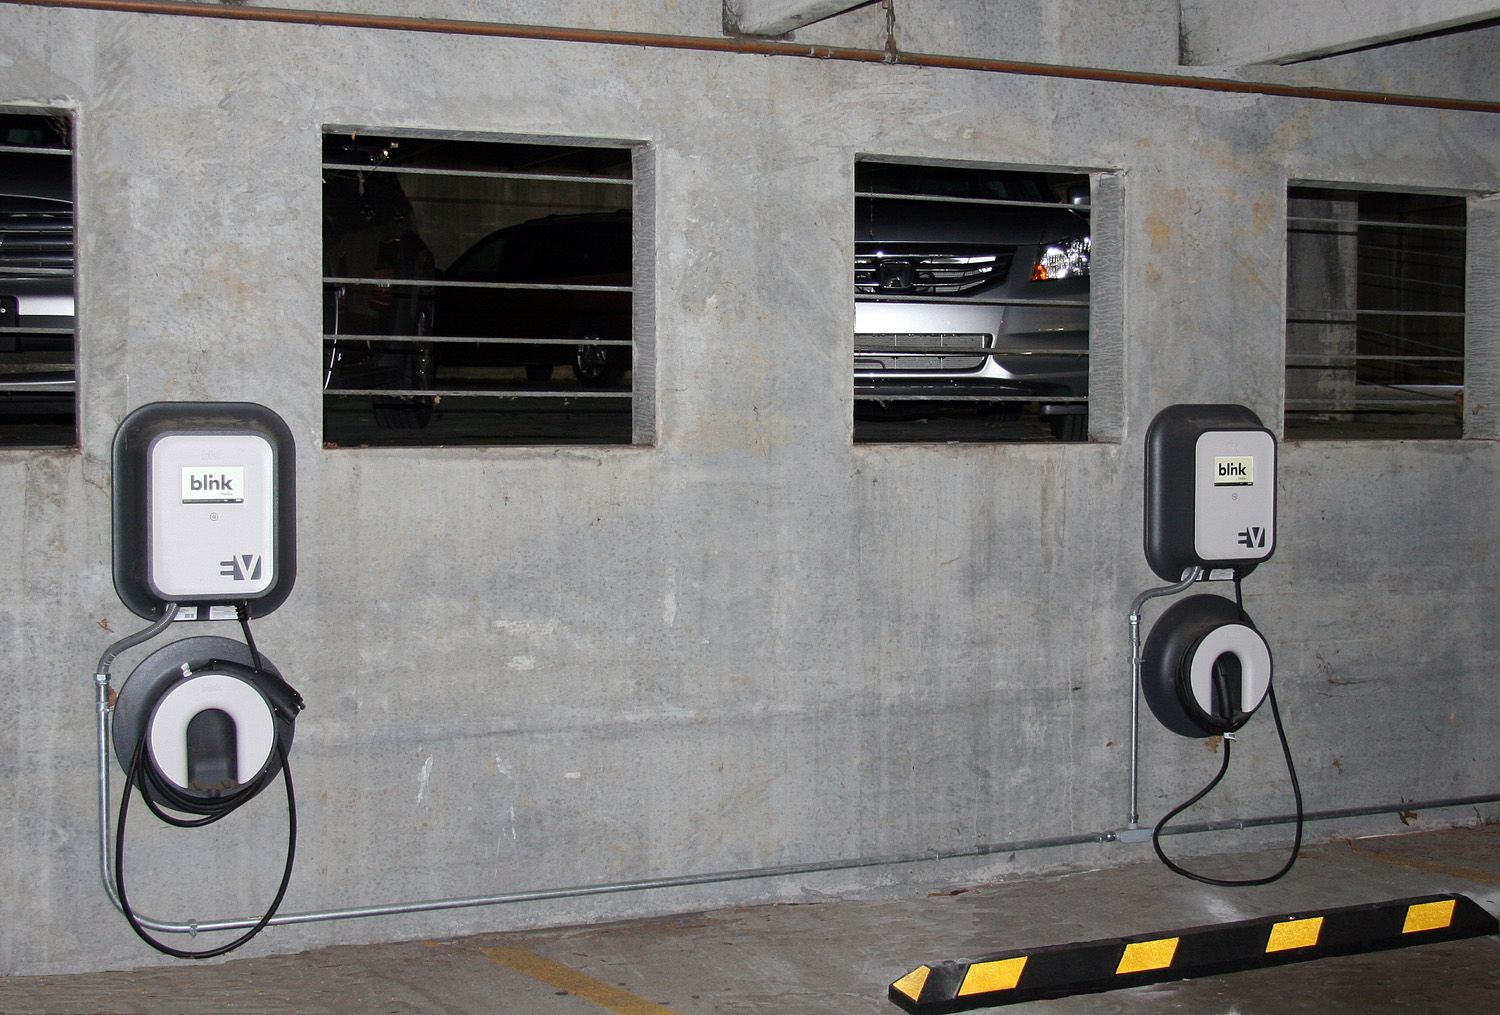 Blink Charging Stations >> Gatlinburg Installs Blink Charging Stations For Electric